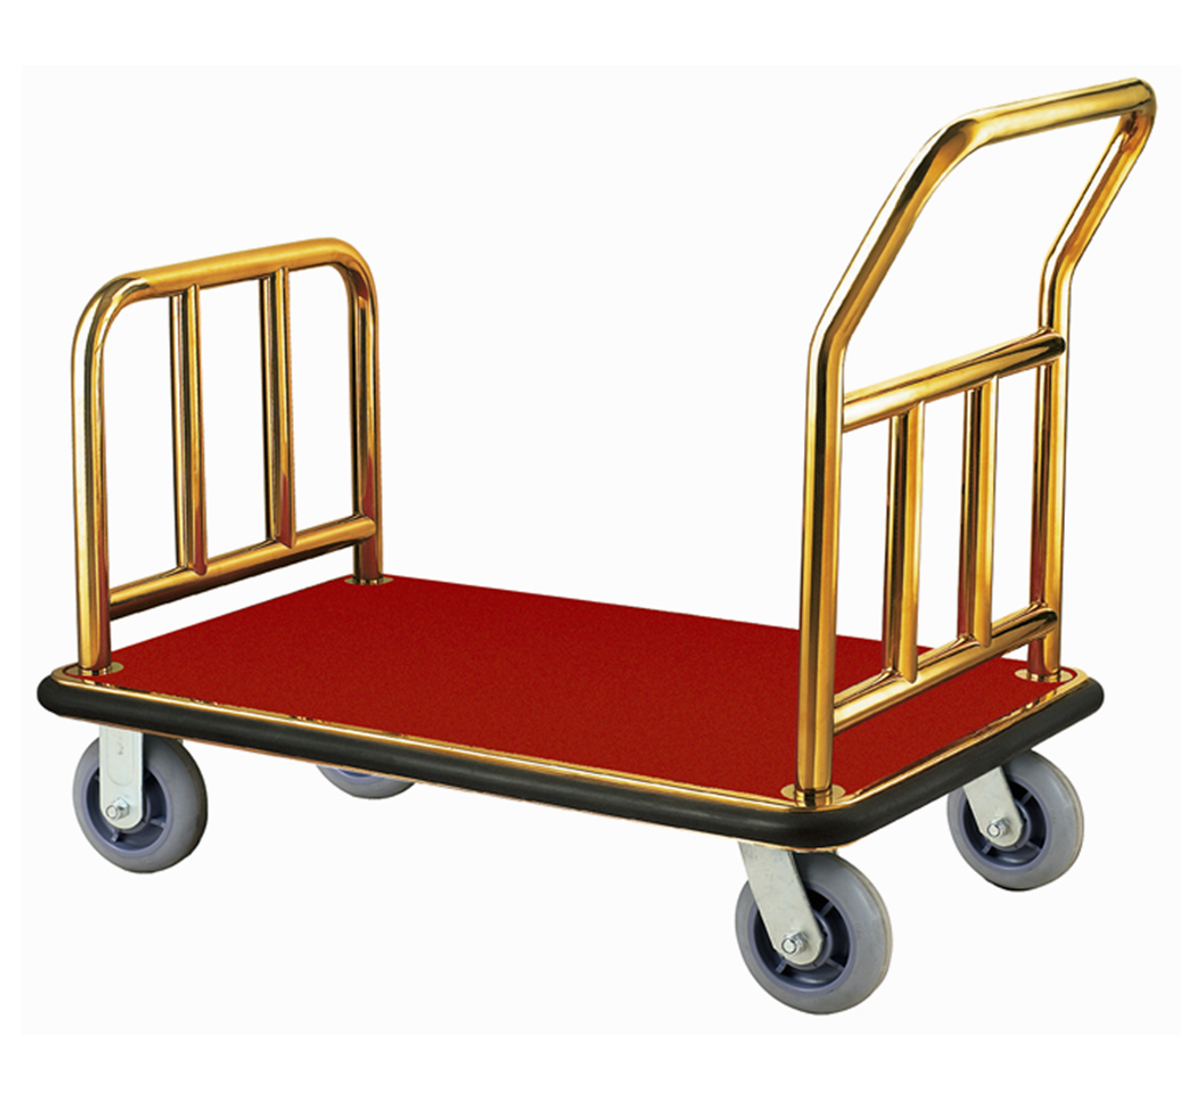 Folded Hotel Luggage Cart